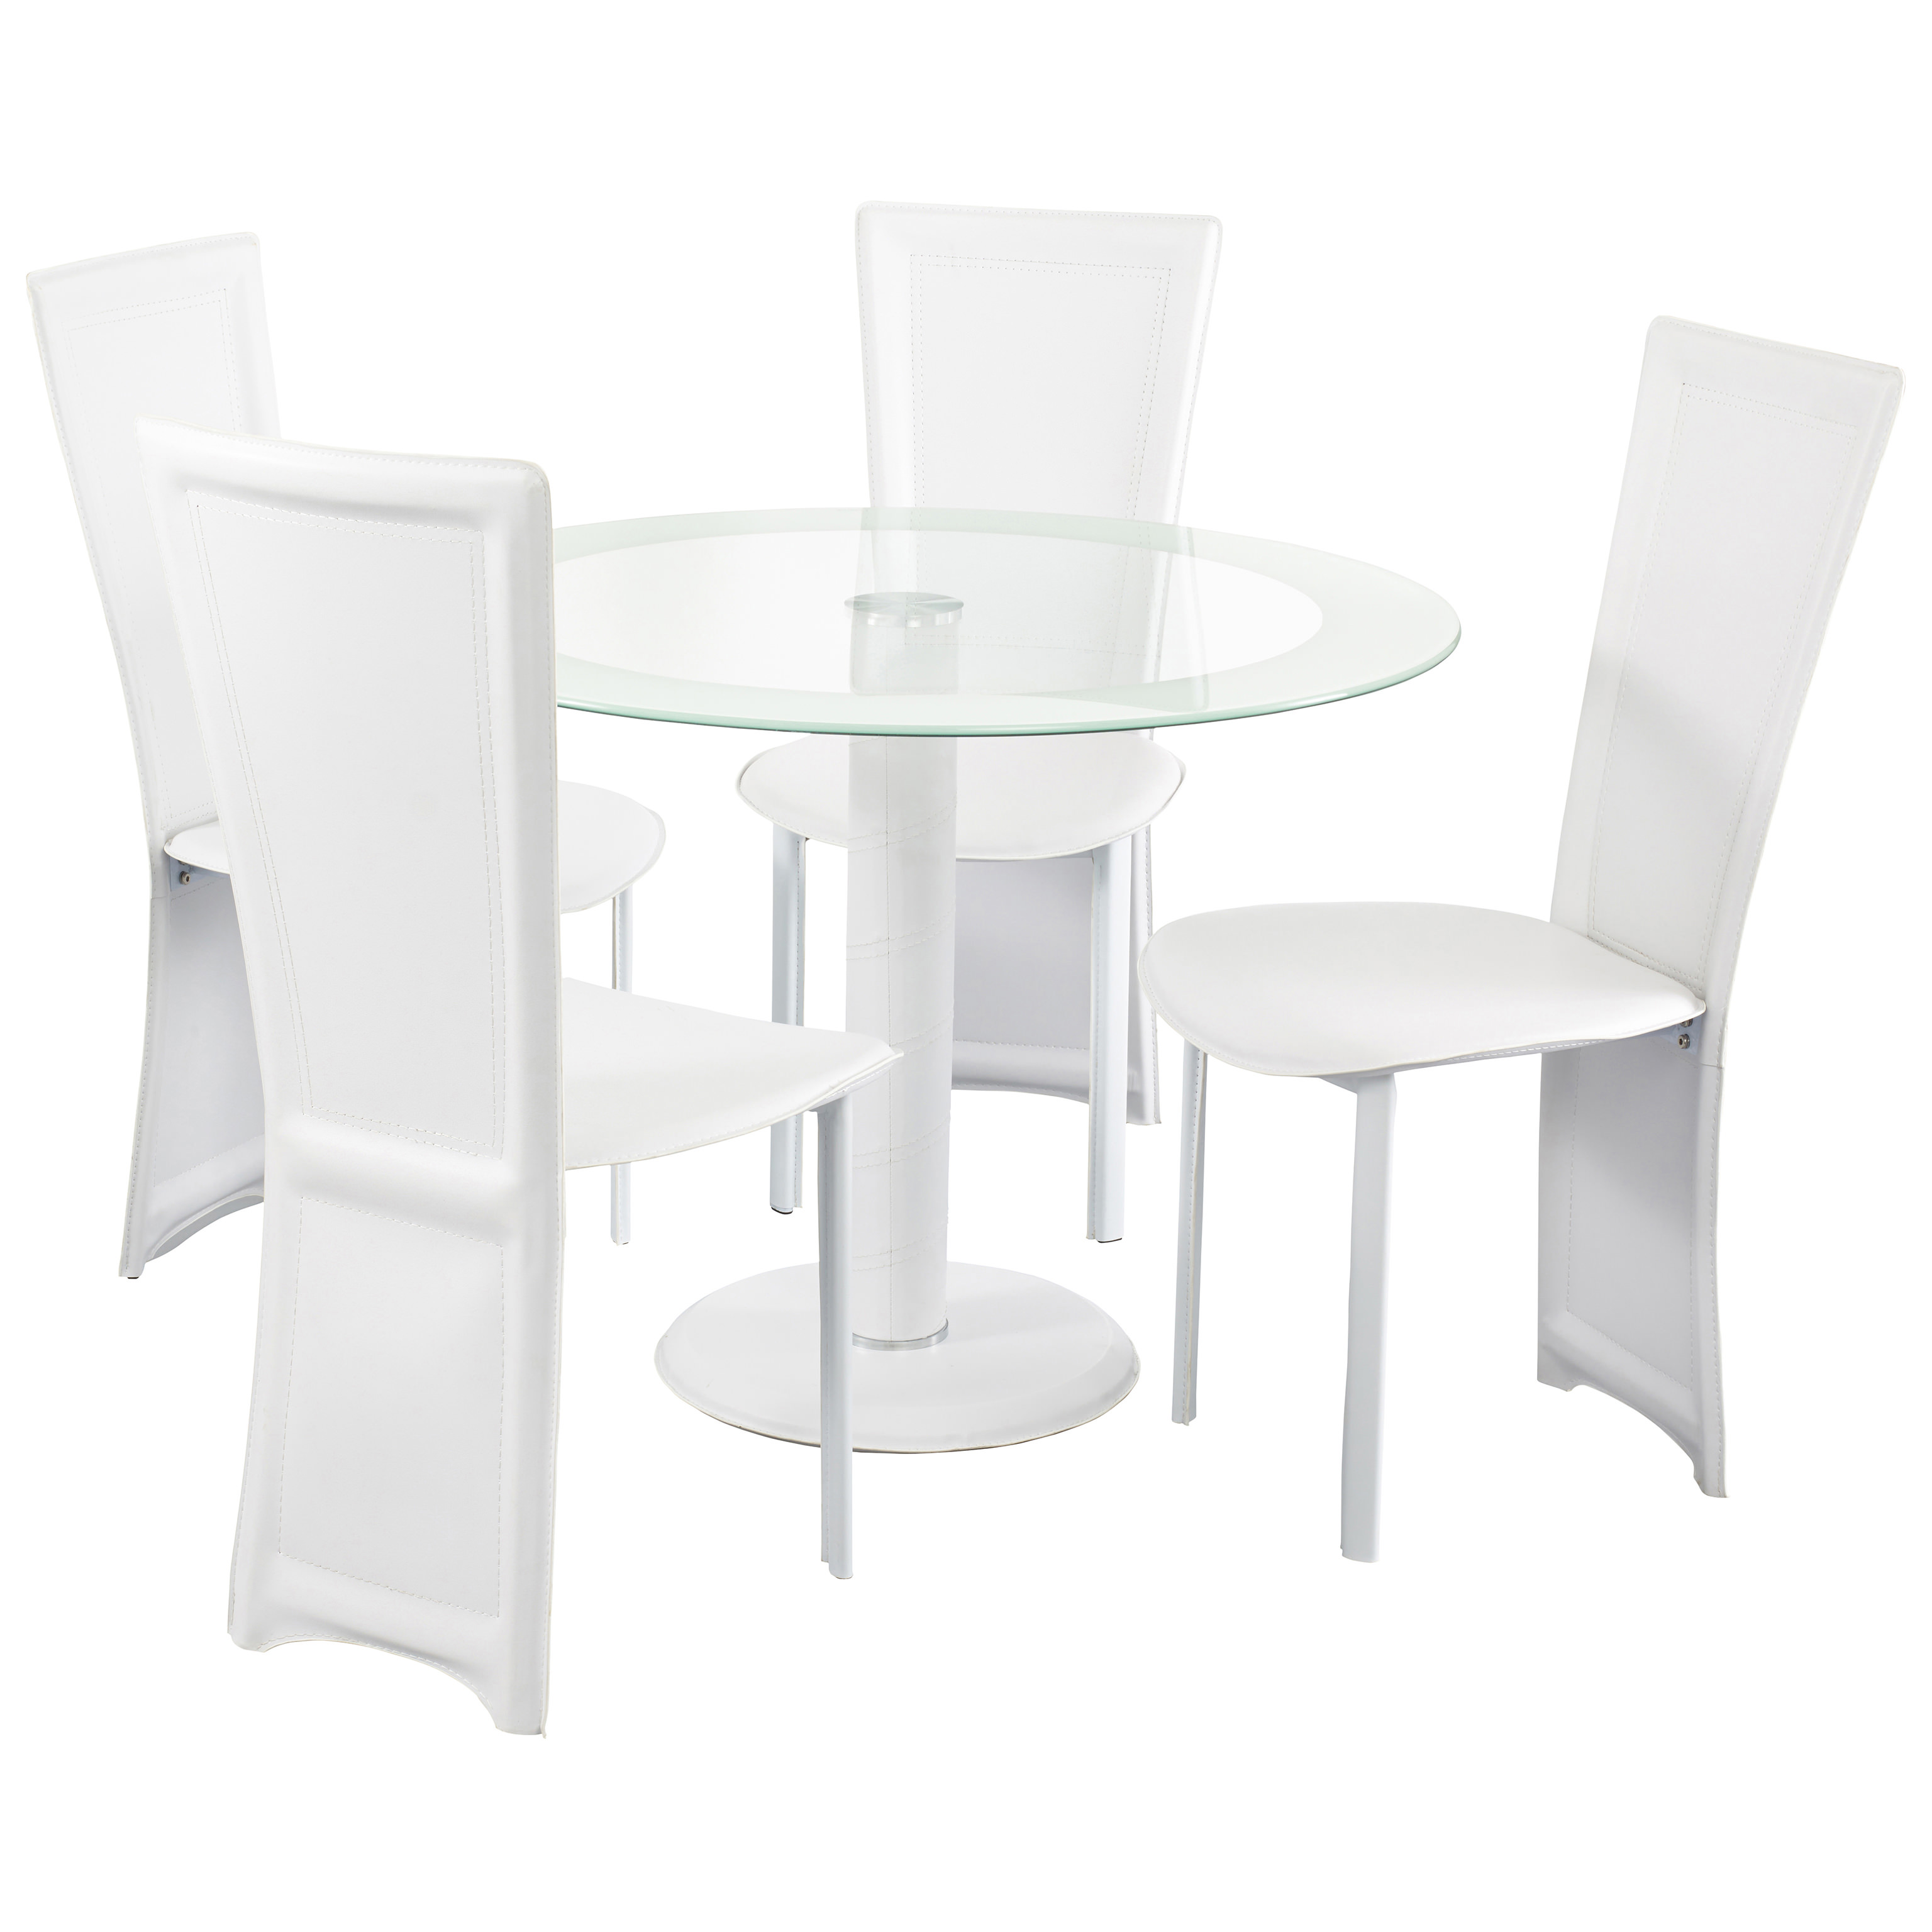 Clear Glass Round Dining Table and Chair Set with 4